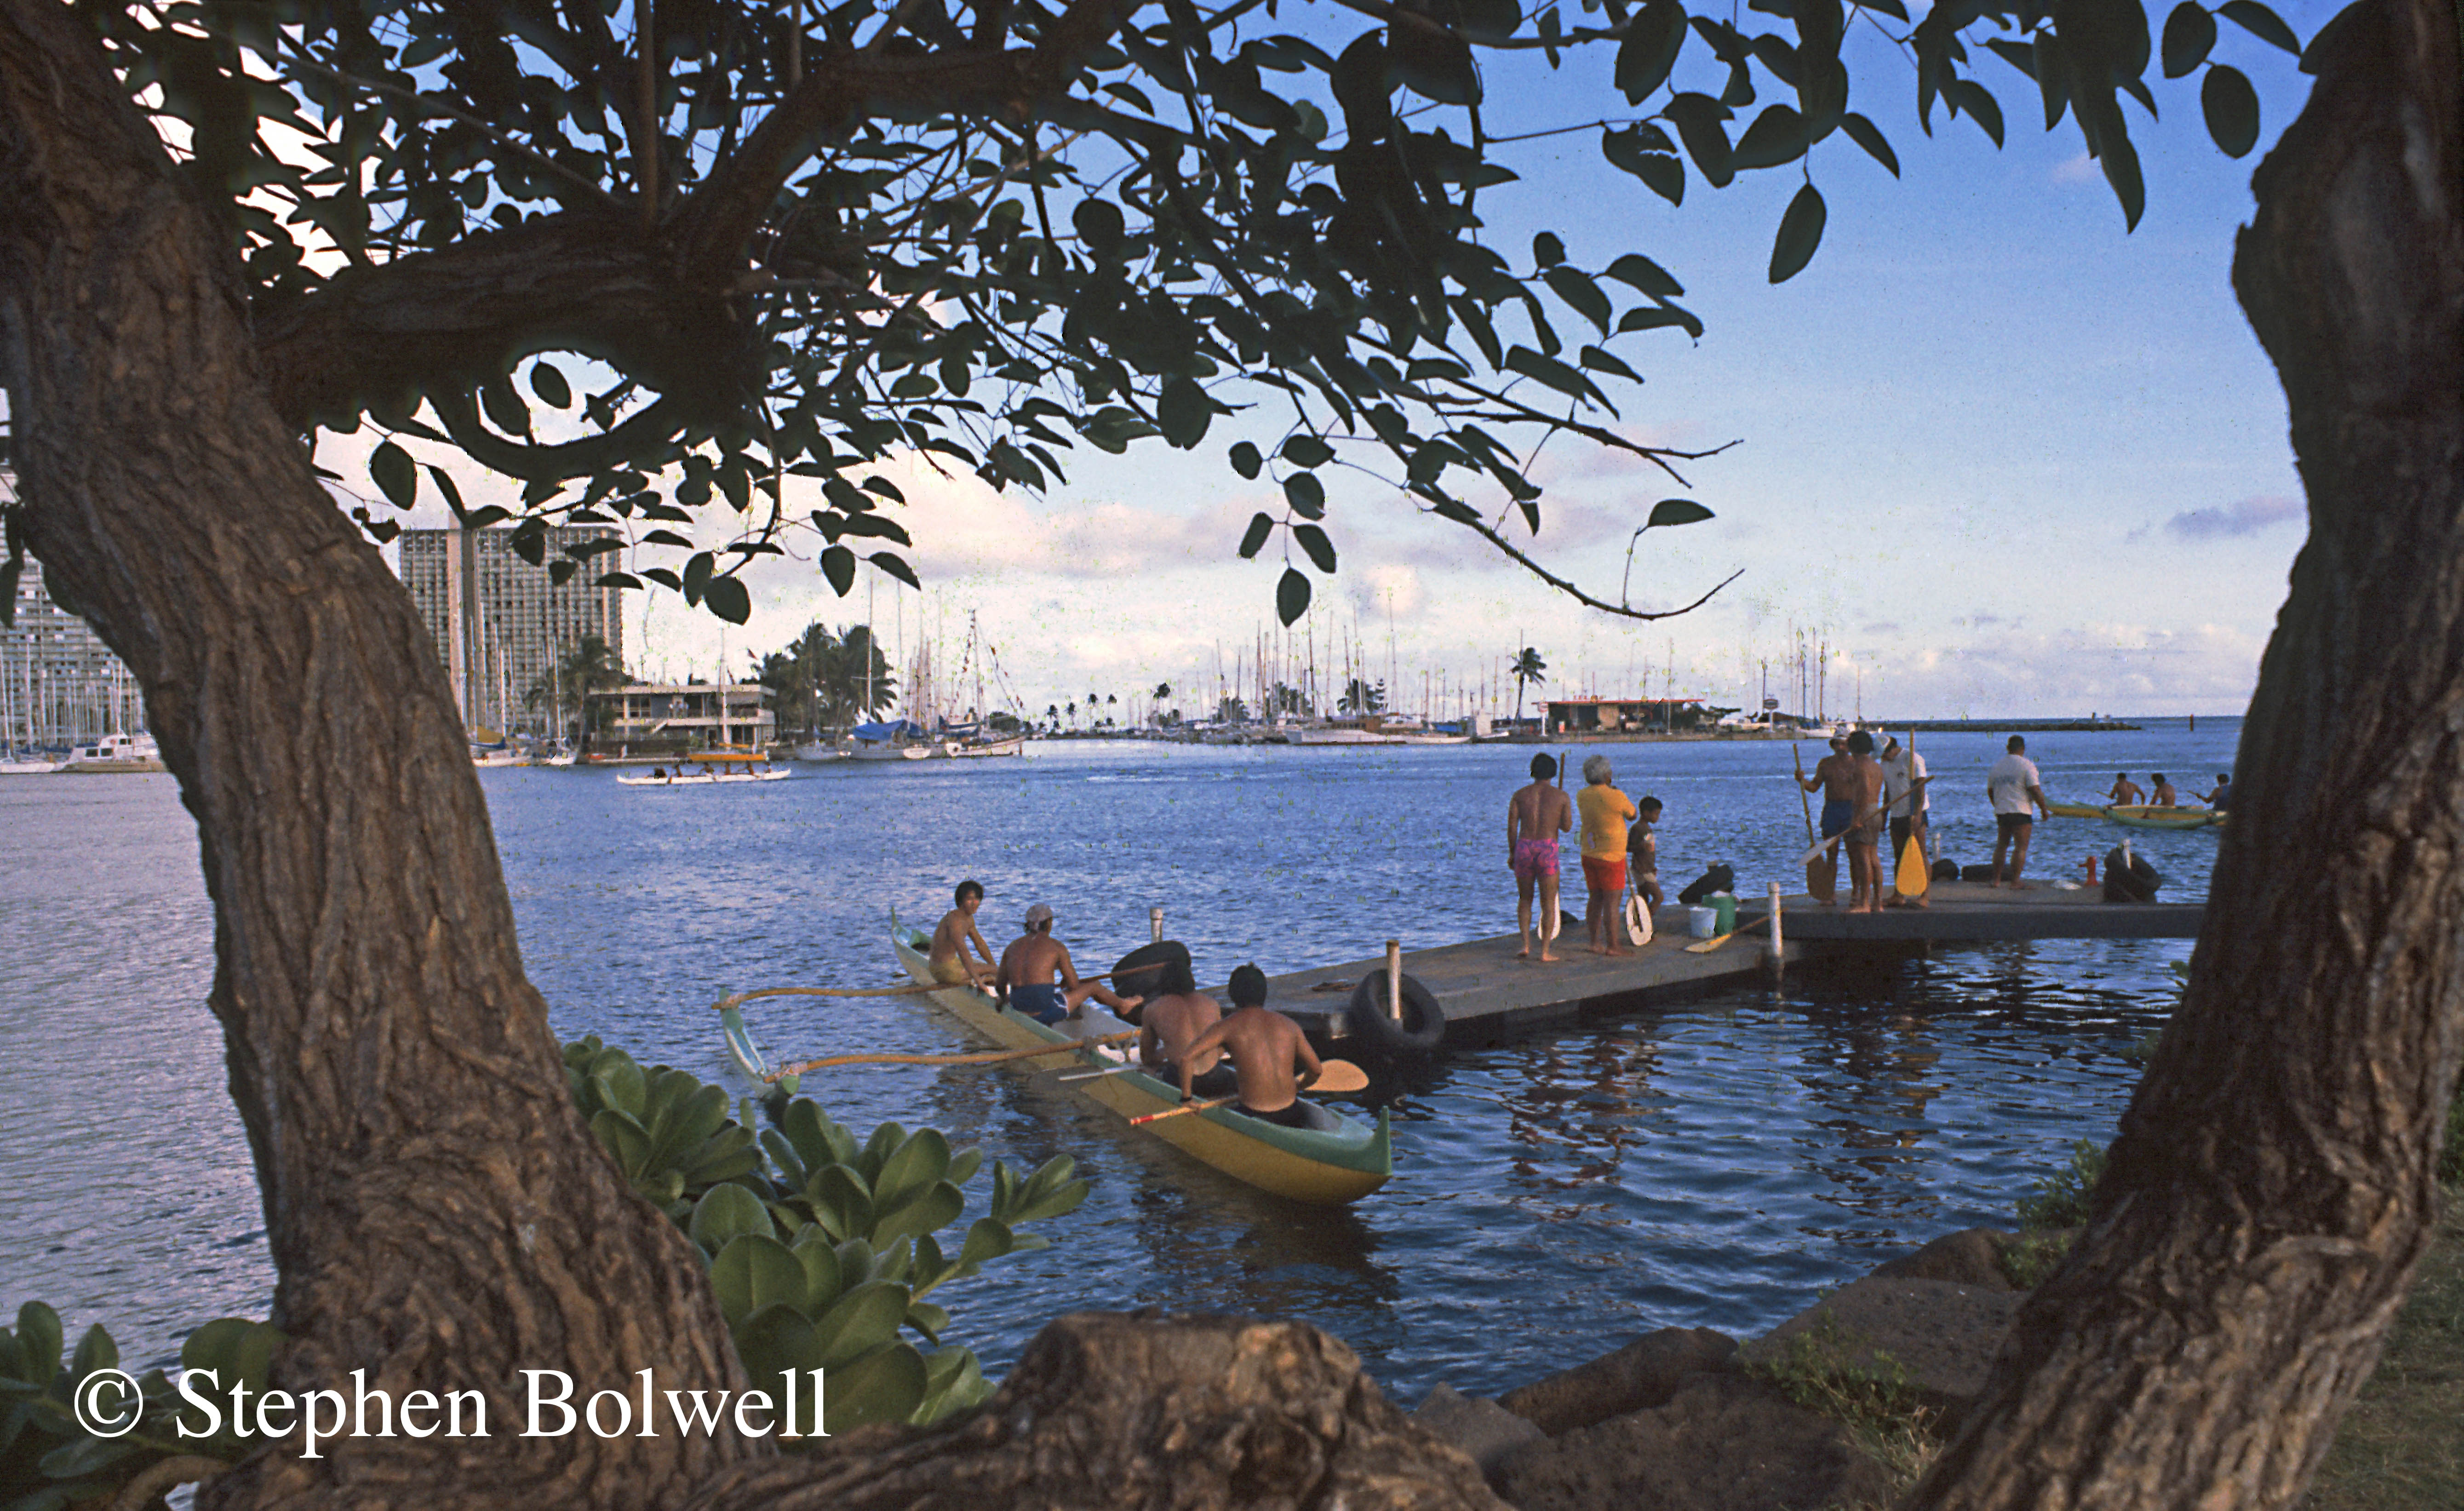 In Honolulu locals race canoes that have changed very little since Captain Cook's arrival on the Islands two hundred and one years before this picture was taken.